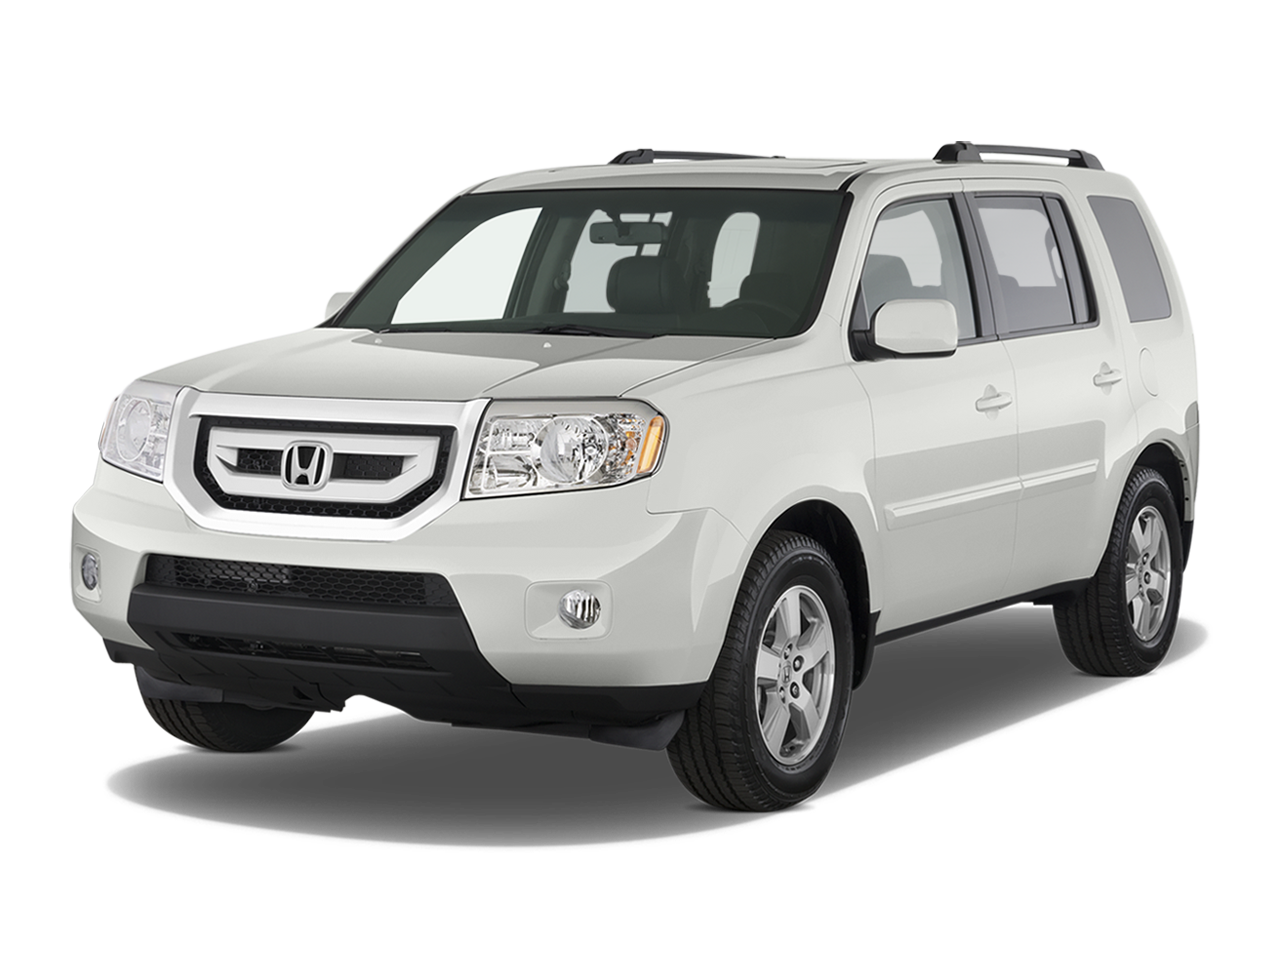 The 25 best 2010 honda pilot ideas on pinterest honda pilot 2012 honda pilot and honda truck